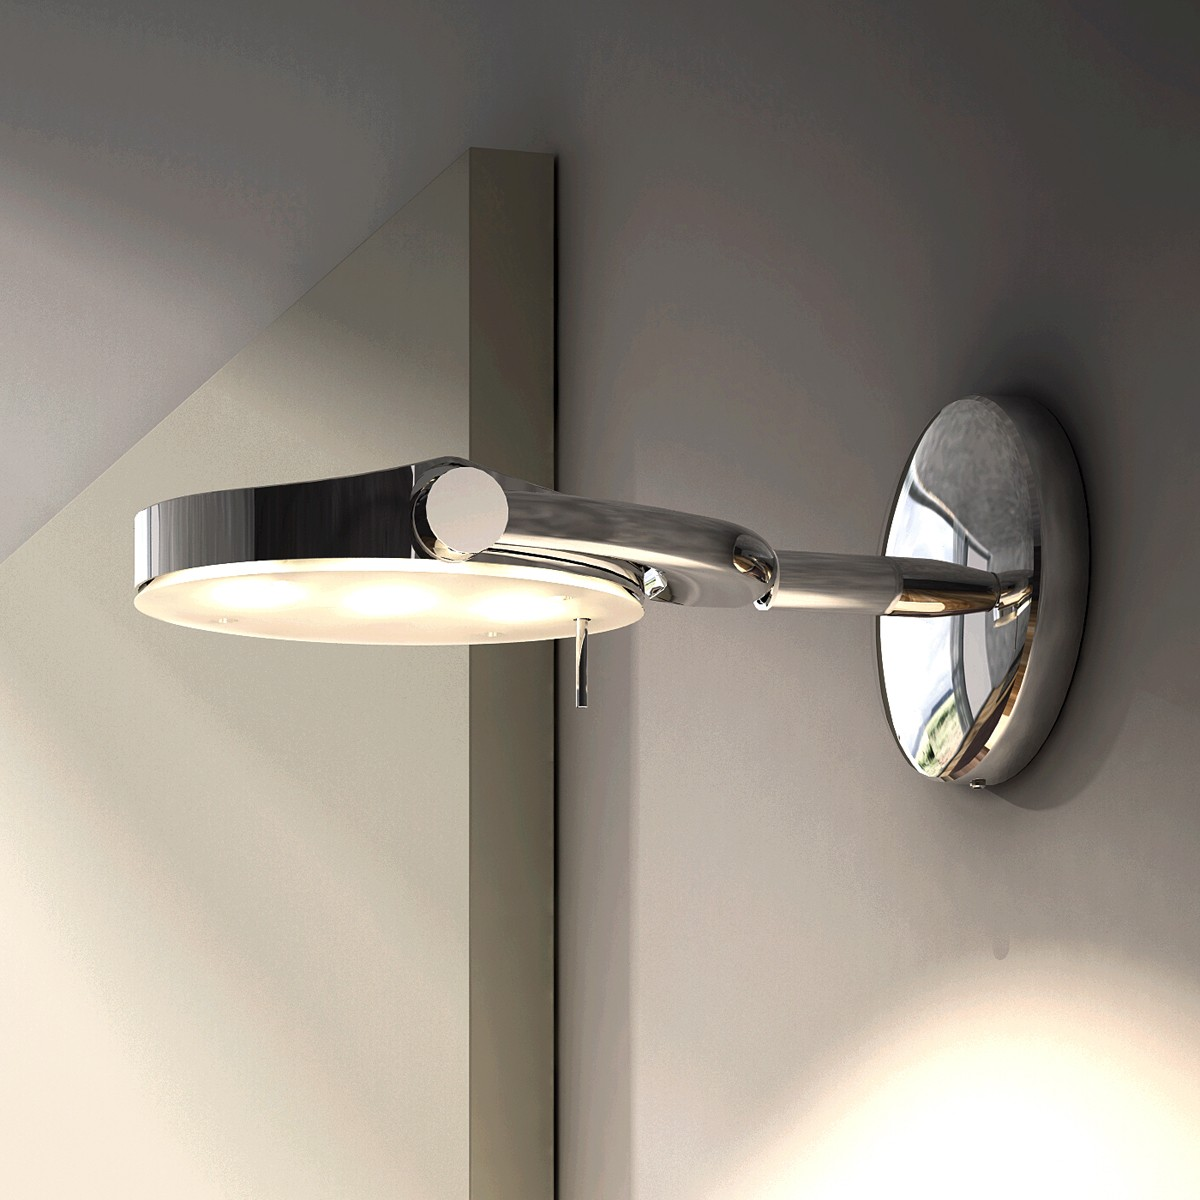 Milan Perceval LED 6337 Wandleuchte, Chrom